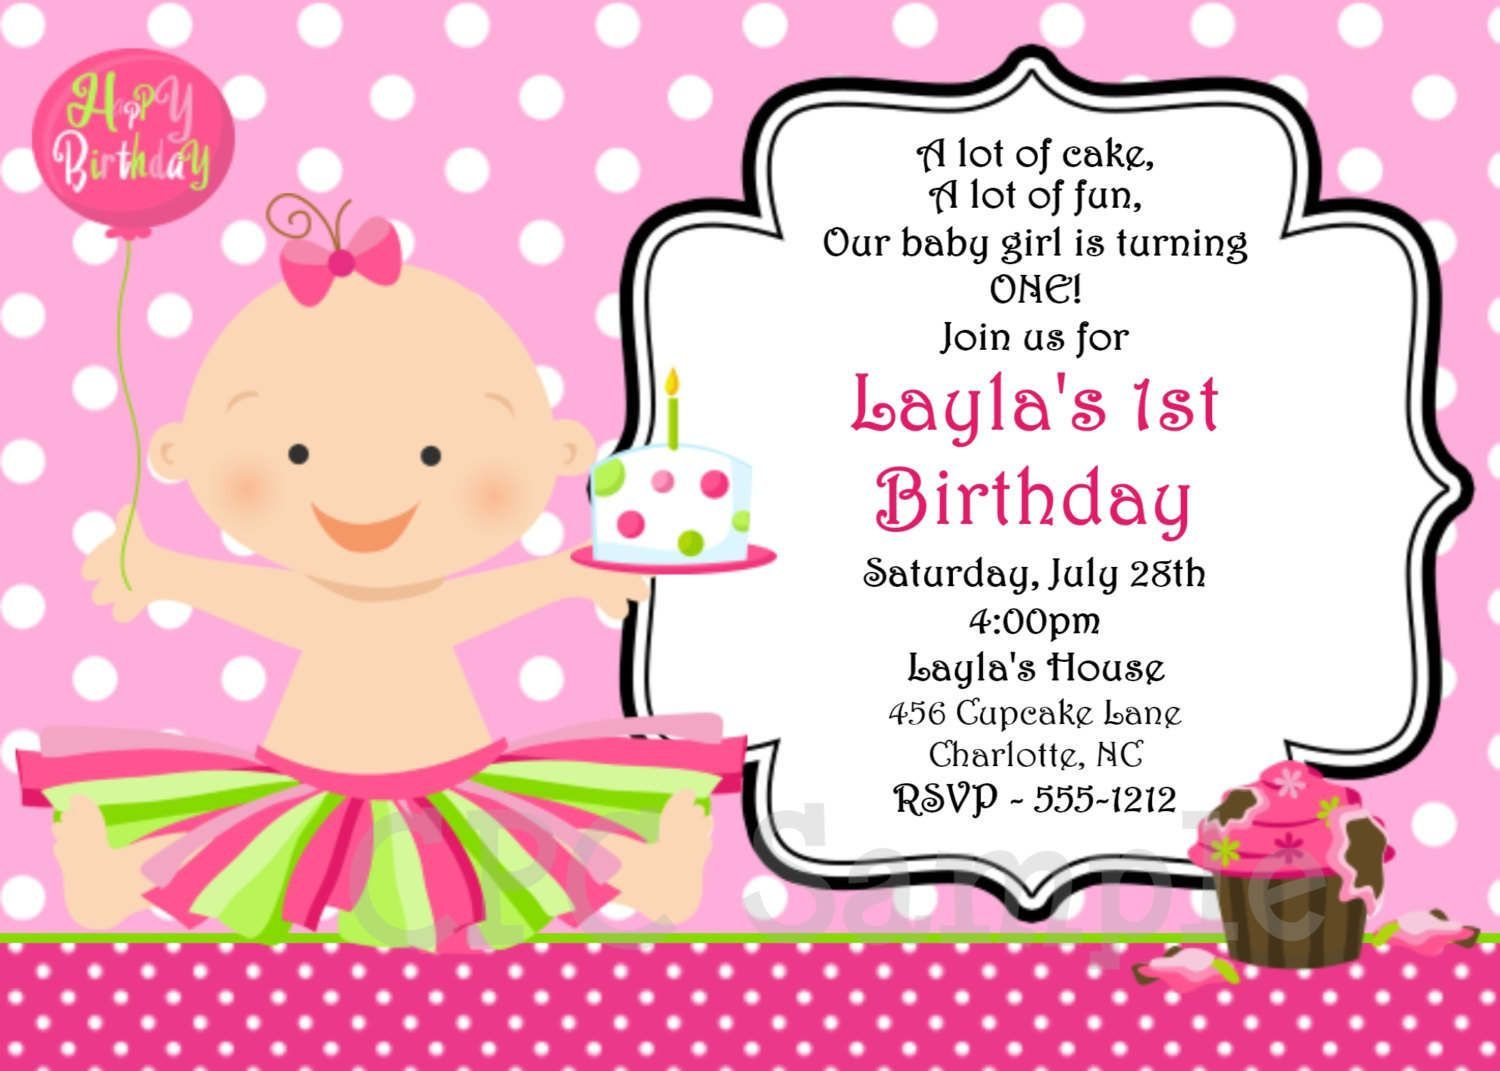 004 Archaicawful Free Online Birthday Invitation Card Maker With Name And Photo Design Full